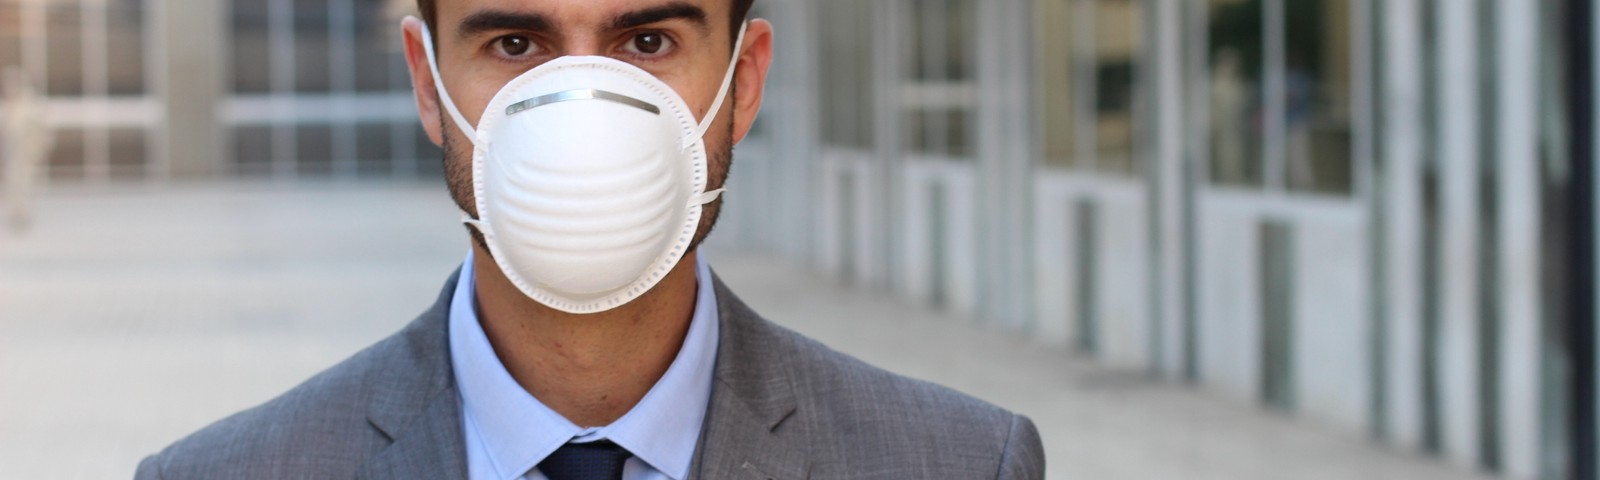 Businessman in suit wearing protective flu mask.